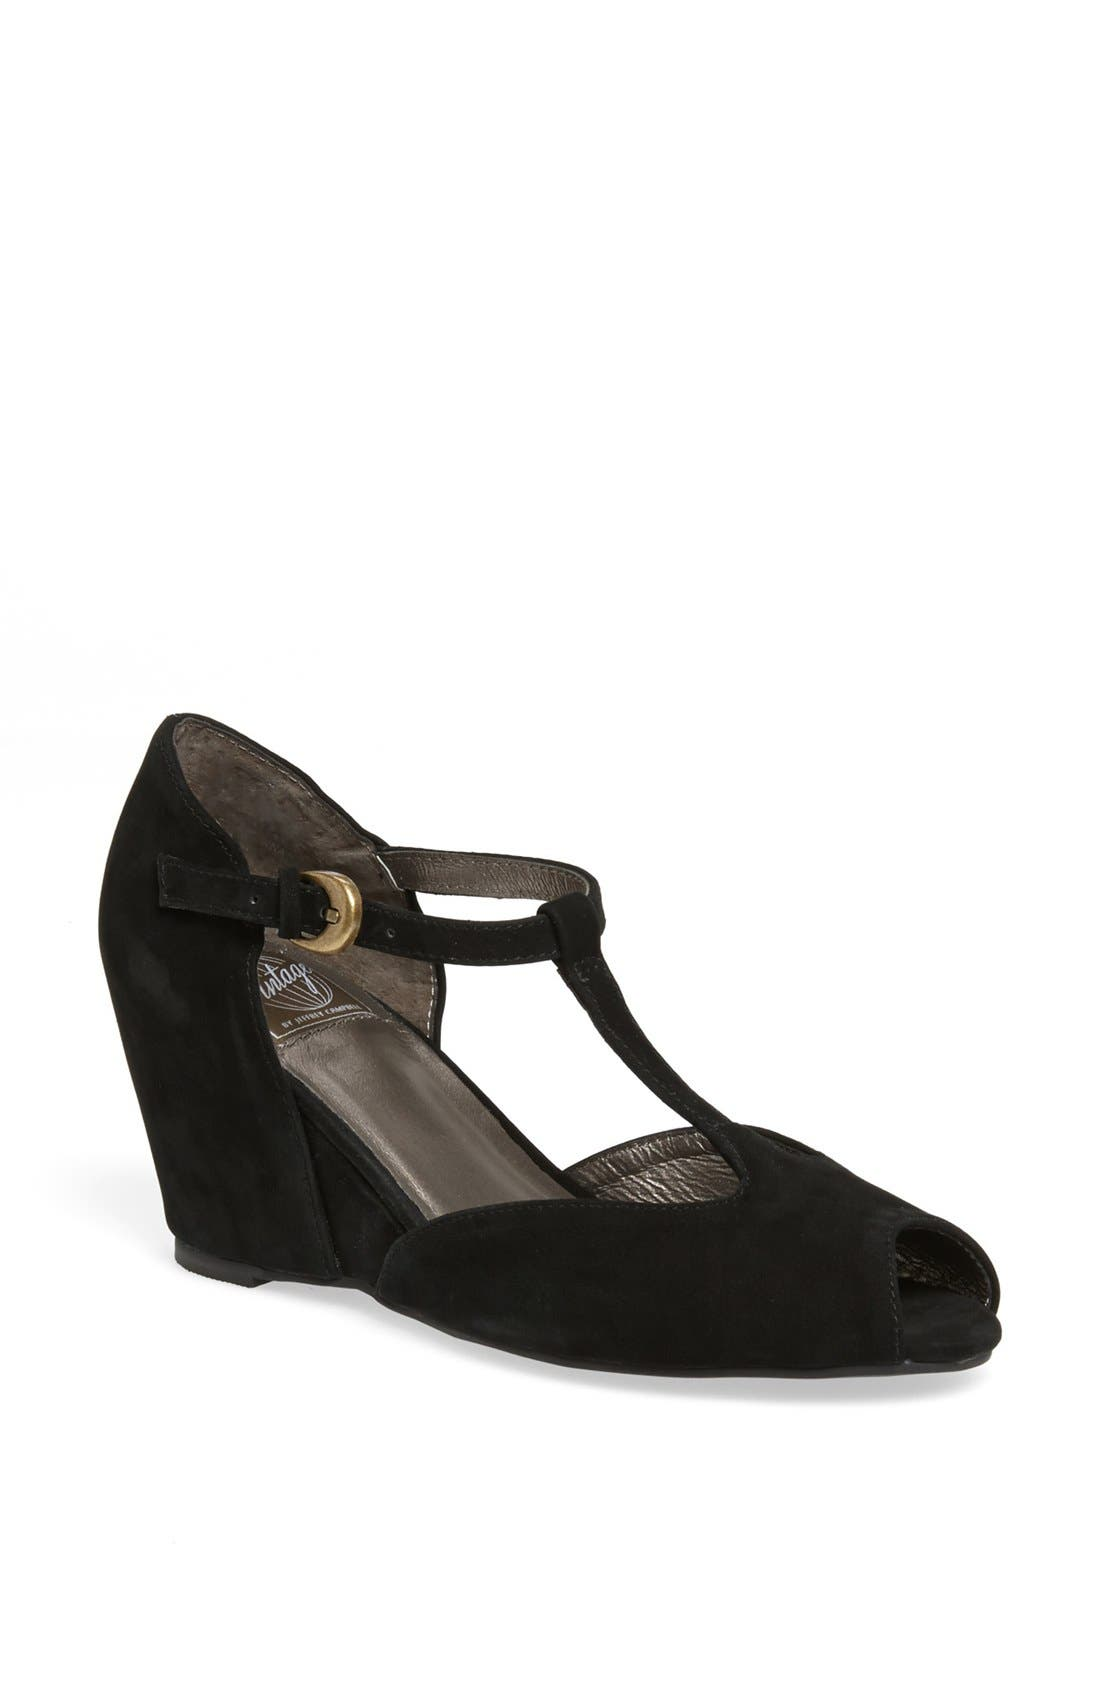 Alternate Image 1 Selected - Jeffrey Campbell 'Irene' Wedge Pump